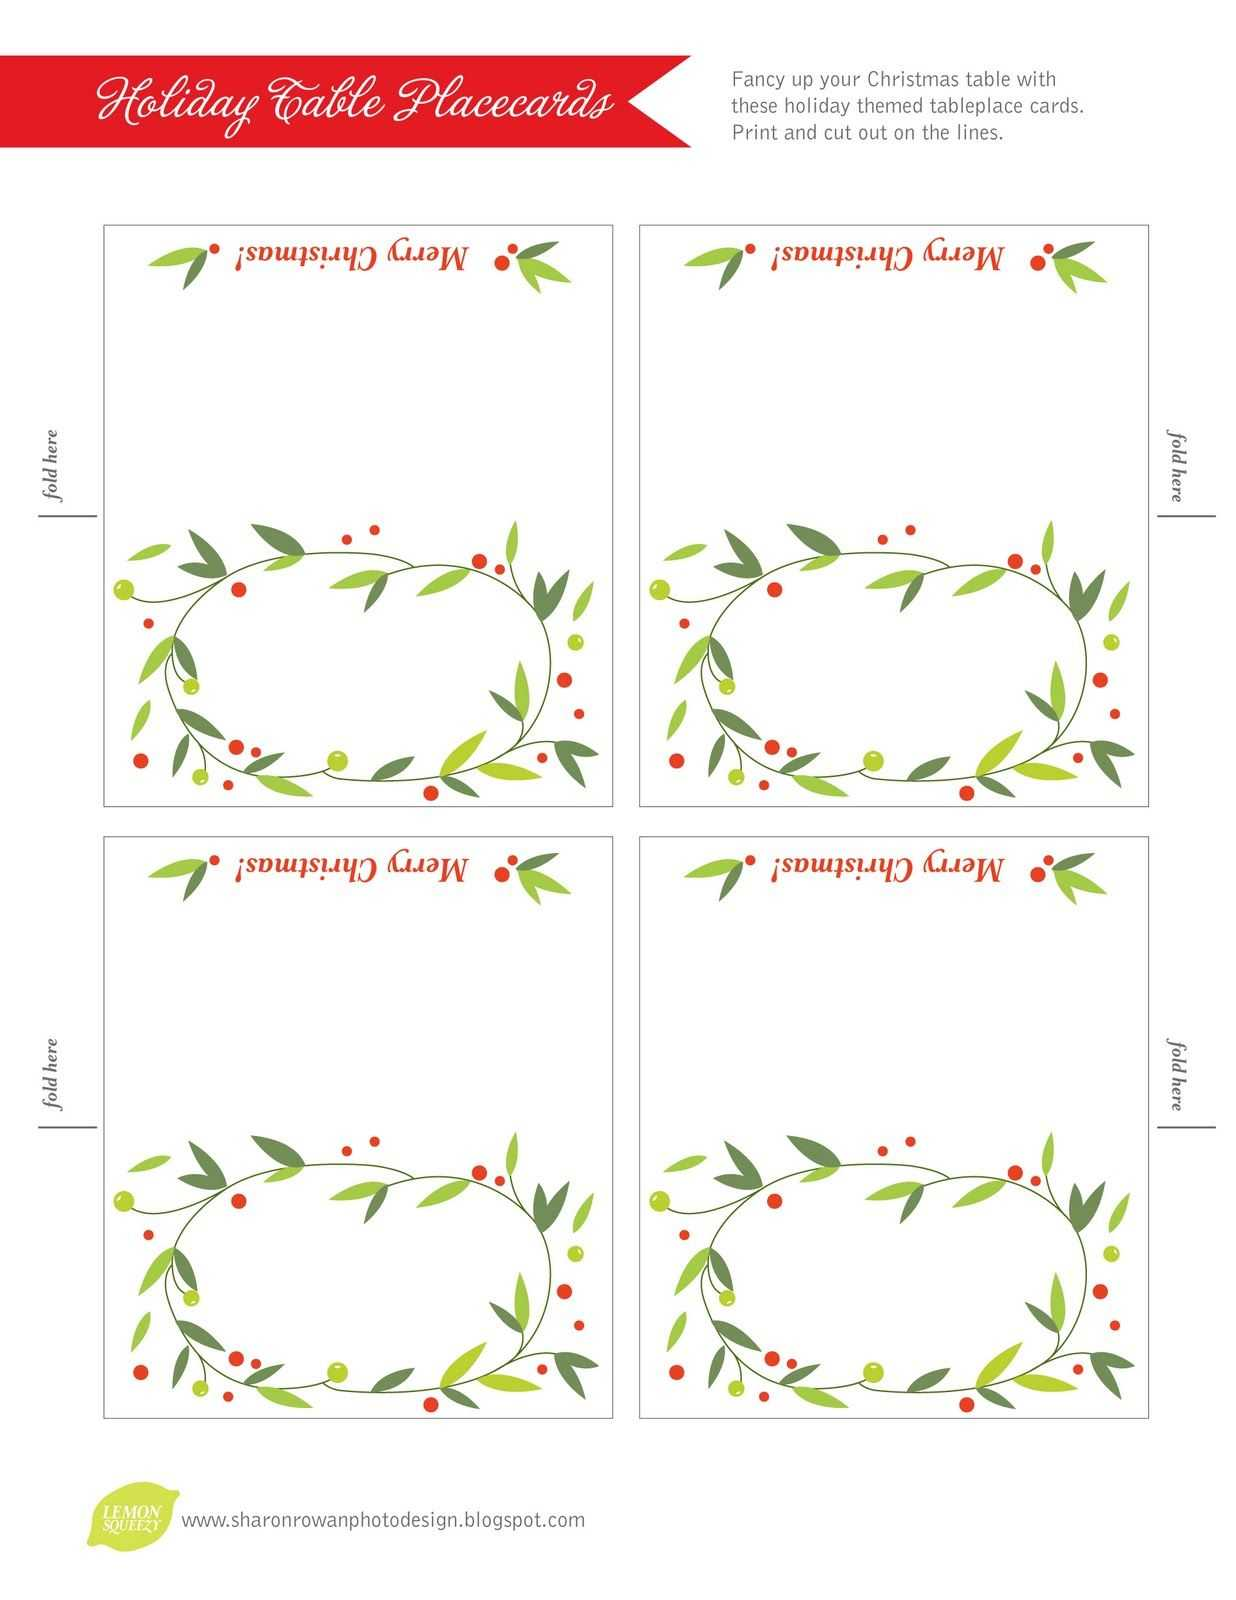 Free Printable Lemon Squeezy: Day 12: Place Cards With Christmas Table Place Cards Template